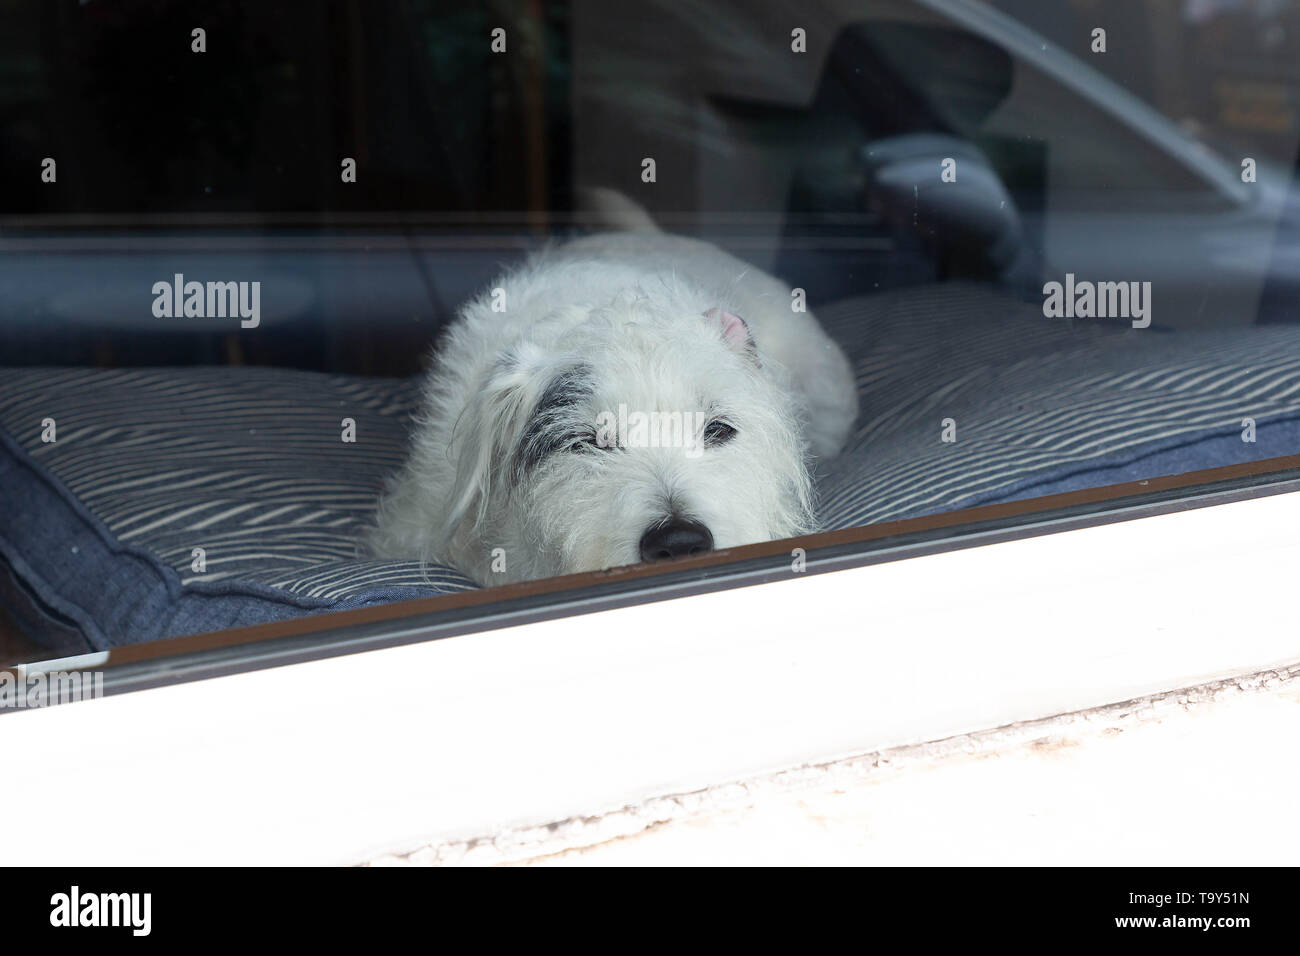 Wire-Haired Parson Russell Terrier dog sitting inside a building and looking out of a window - Stock Image